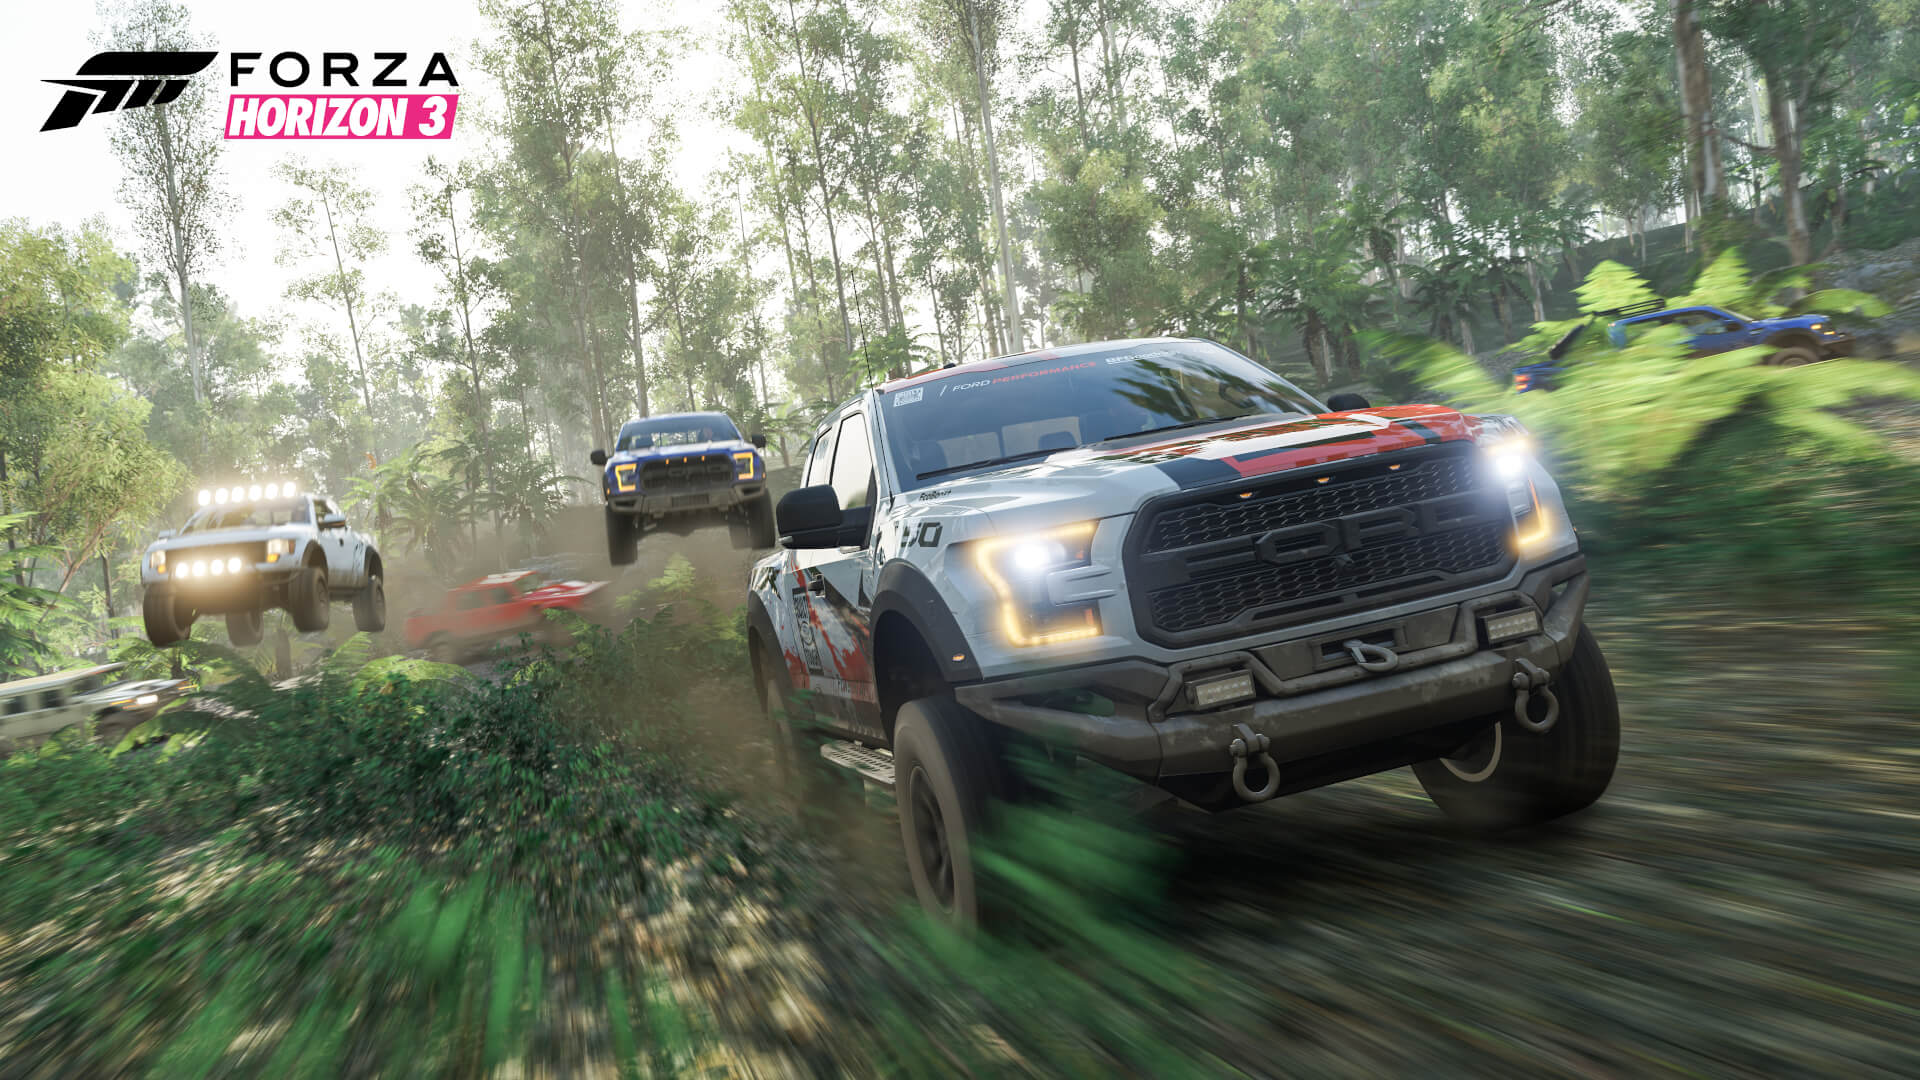 Forza Horizon 3's OneDrive Music Support Ends March 31